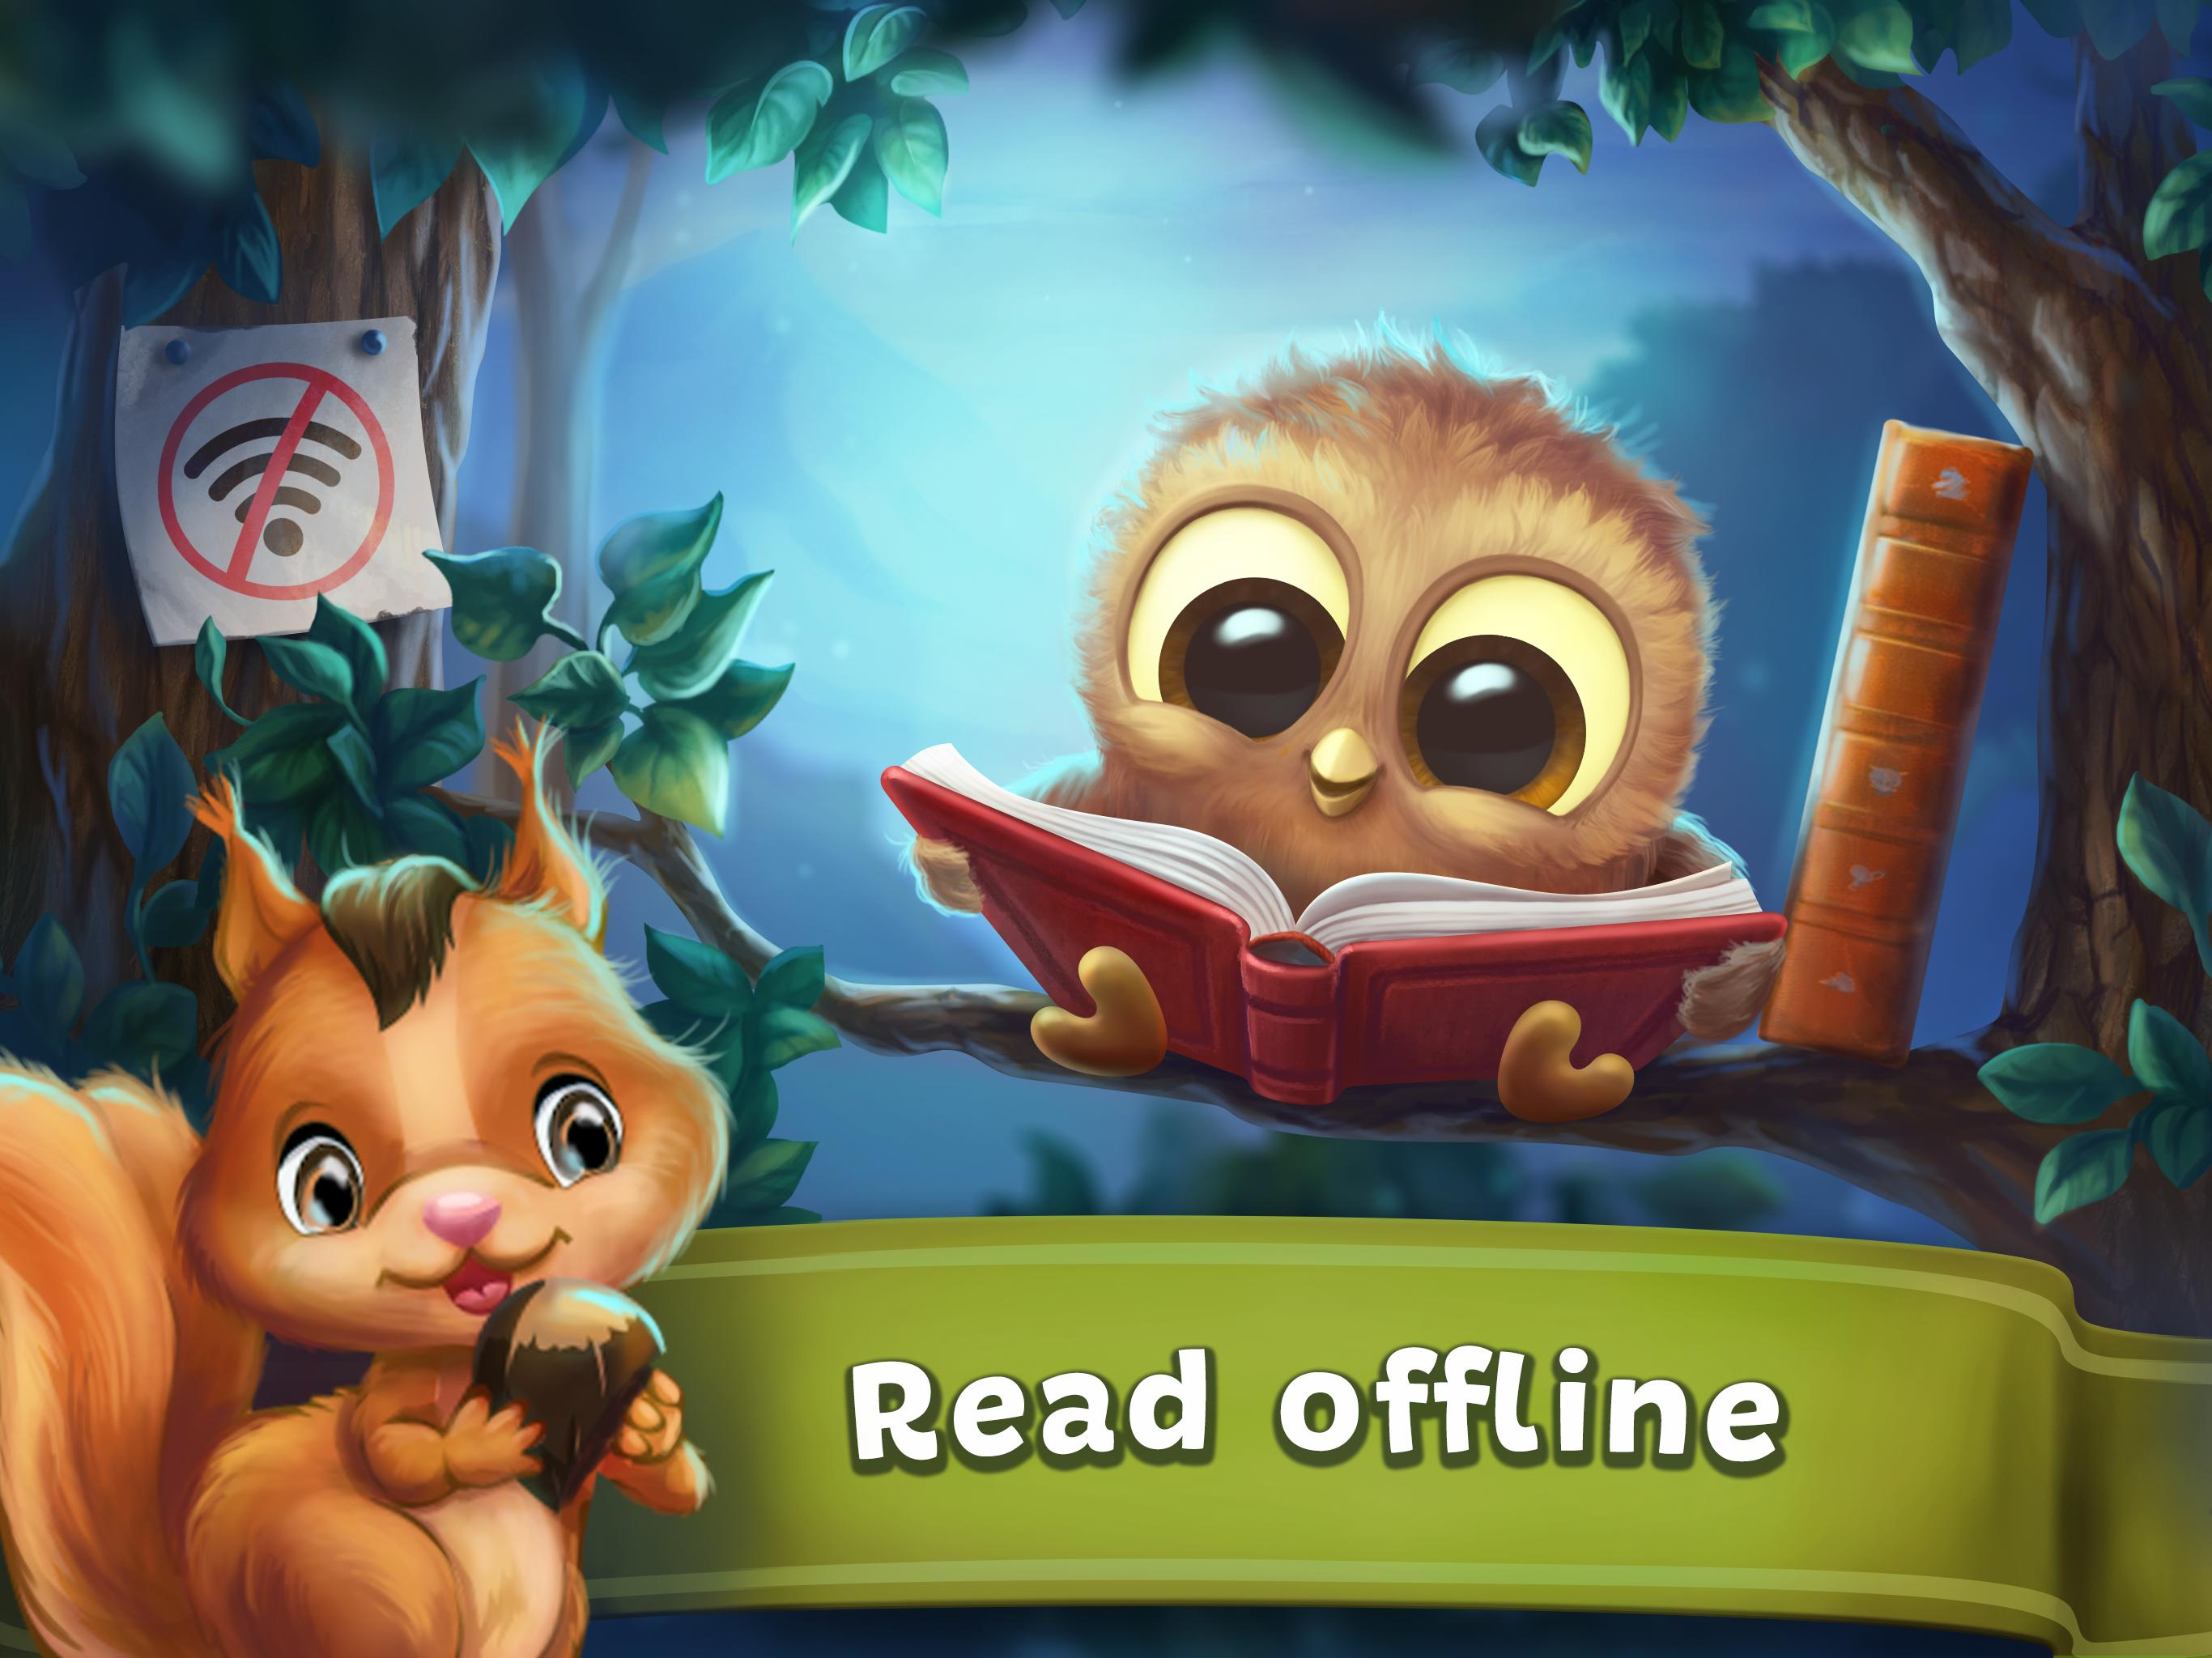 Fairy Tales Children's Books, Stories and Games 2.7.0 Screenshot 15